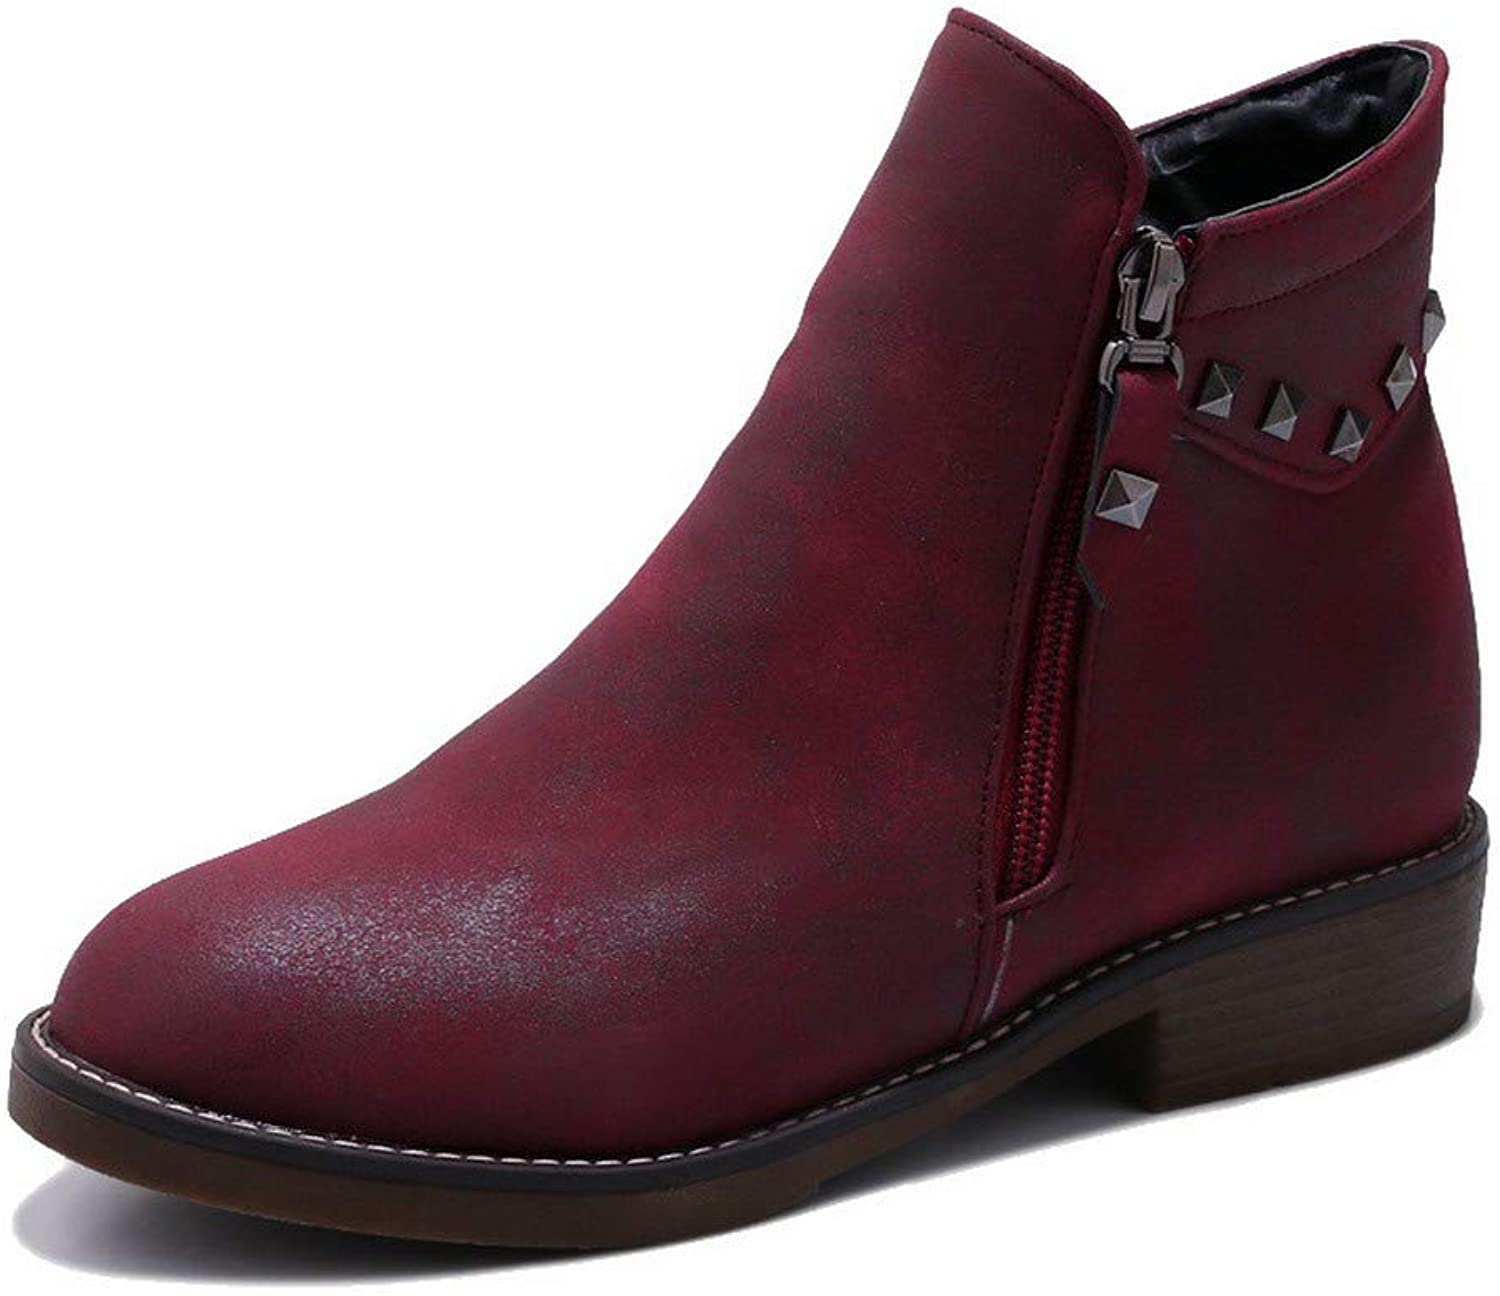 AmoonyFashion Women's Solid Frosted Low-Heels Zipper Closed-Toe Boots, BUSXT115470